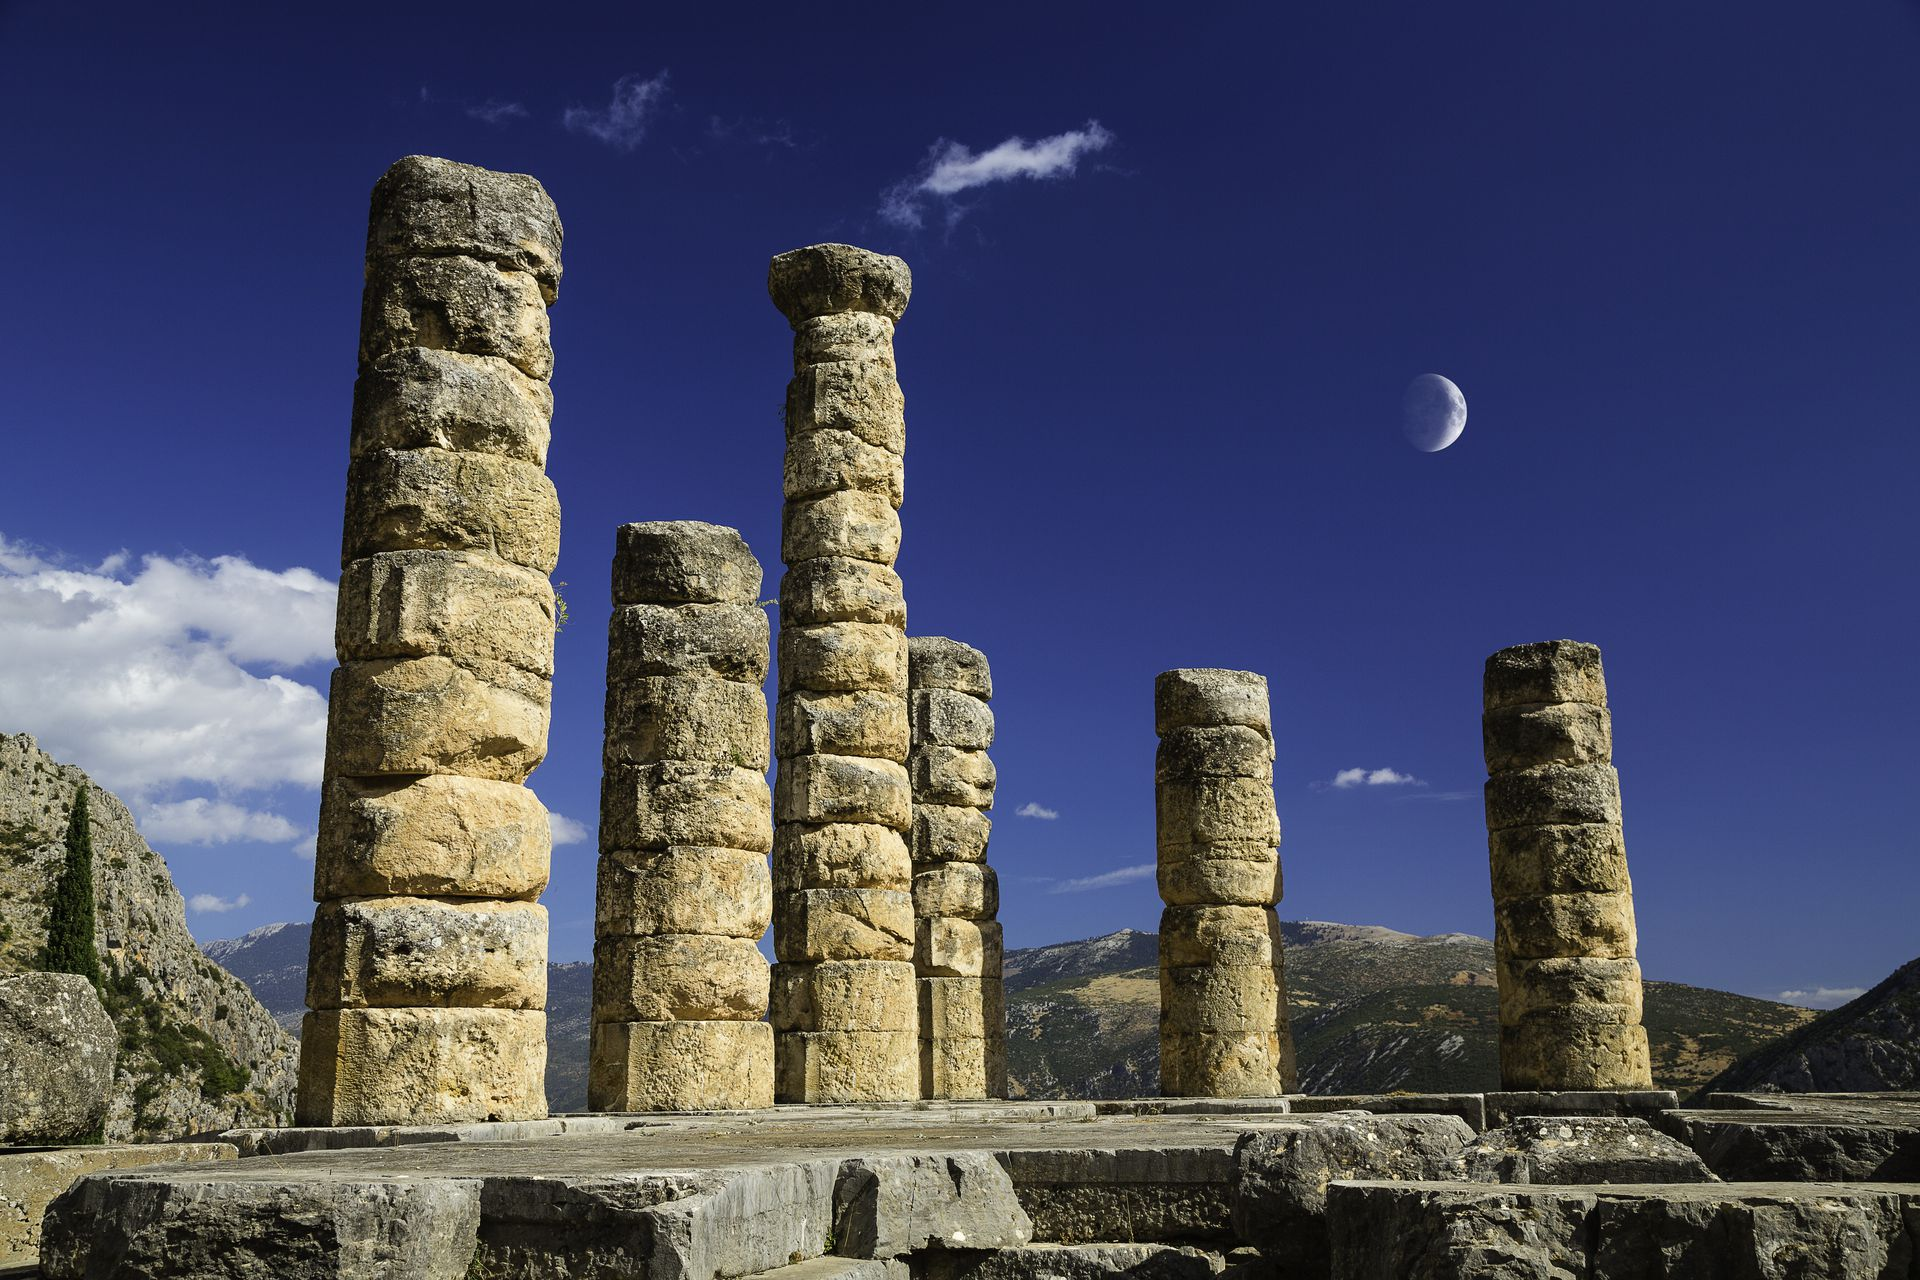 AA (12 hours): [Athens] The ultimate Delphi day trip